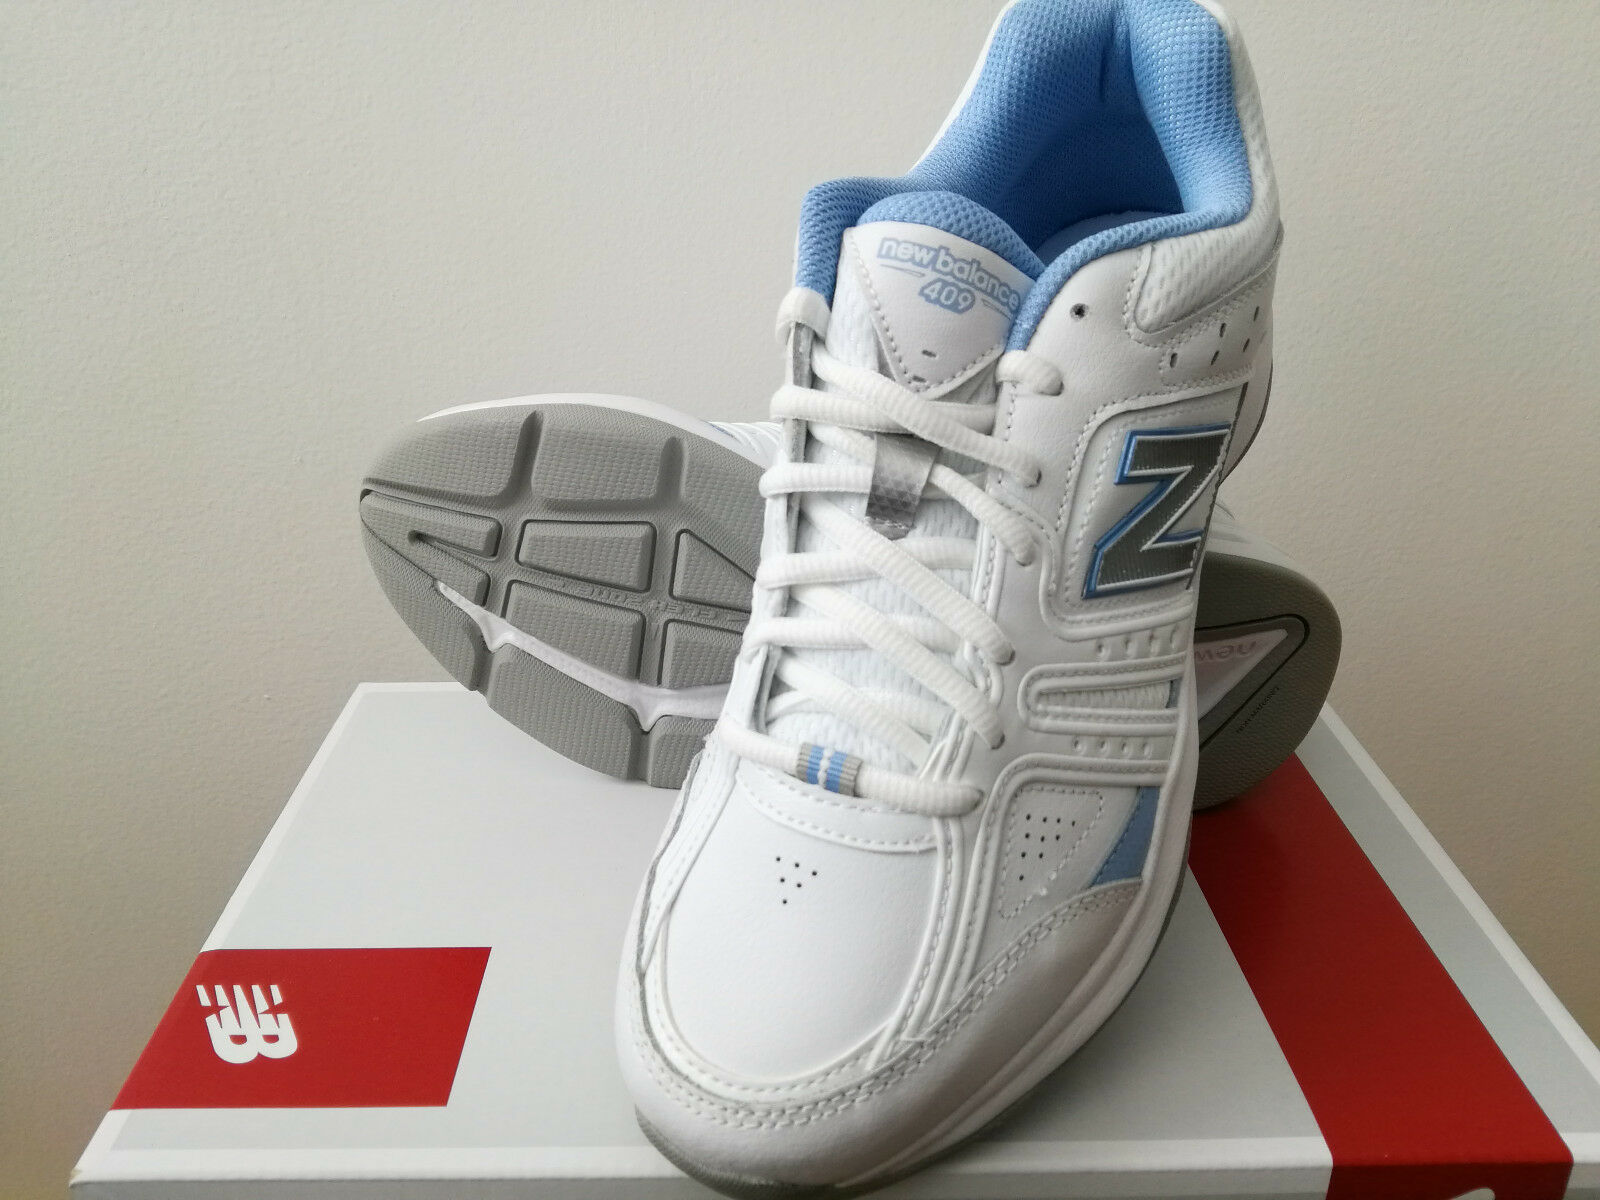 New! Womens New Balance 409 v2 Cushioning Cross Trainer Sneakers Shoes